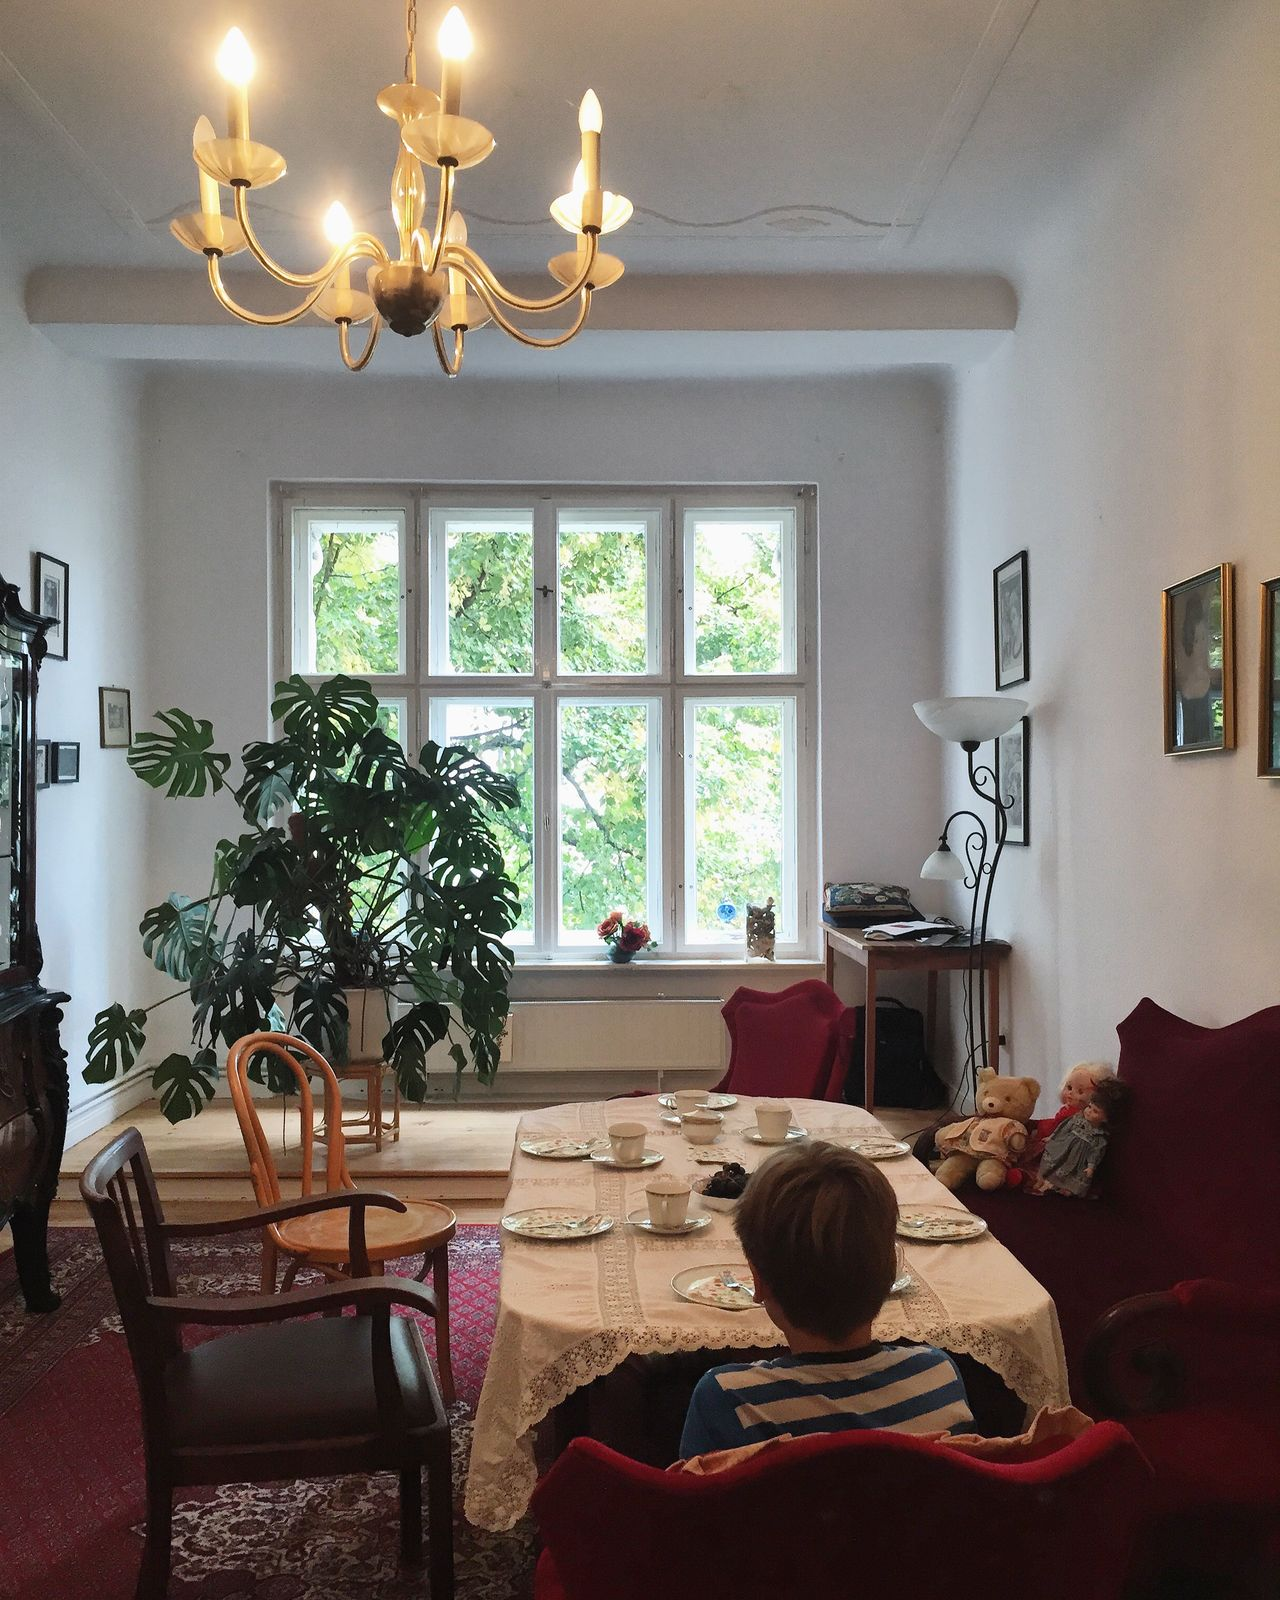 Tea time at Grandmas' Architecture Berlin Apartments Day Domestic Life Home Interior Home Showcase Interior Illuminated Indoors  Lighting Equipment Living Room Living Room Impression Old Buildings One Person Real People Set Table Sofa Tea Time Window